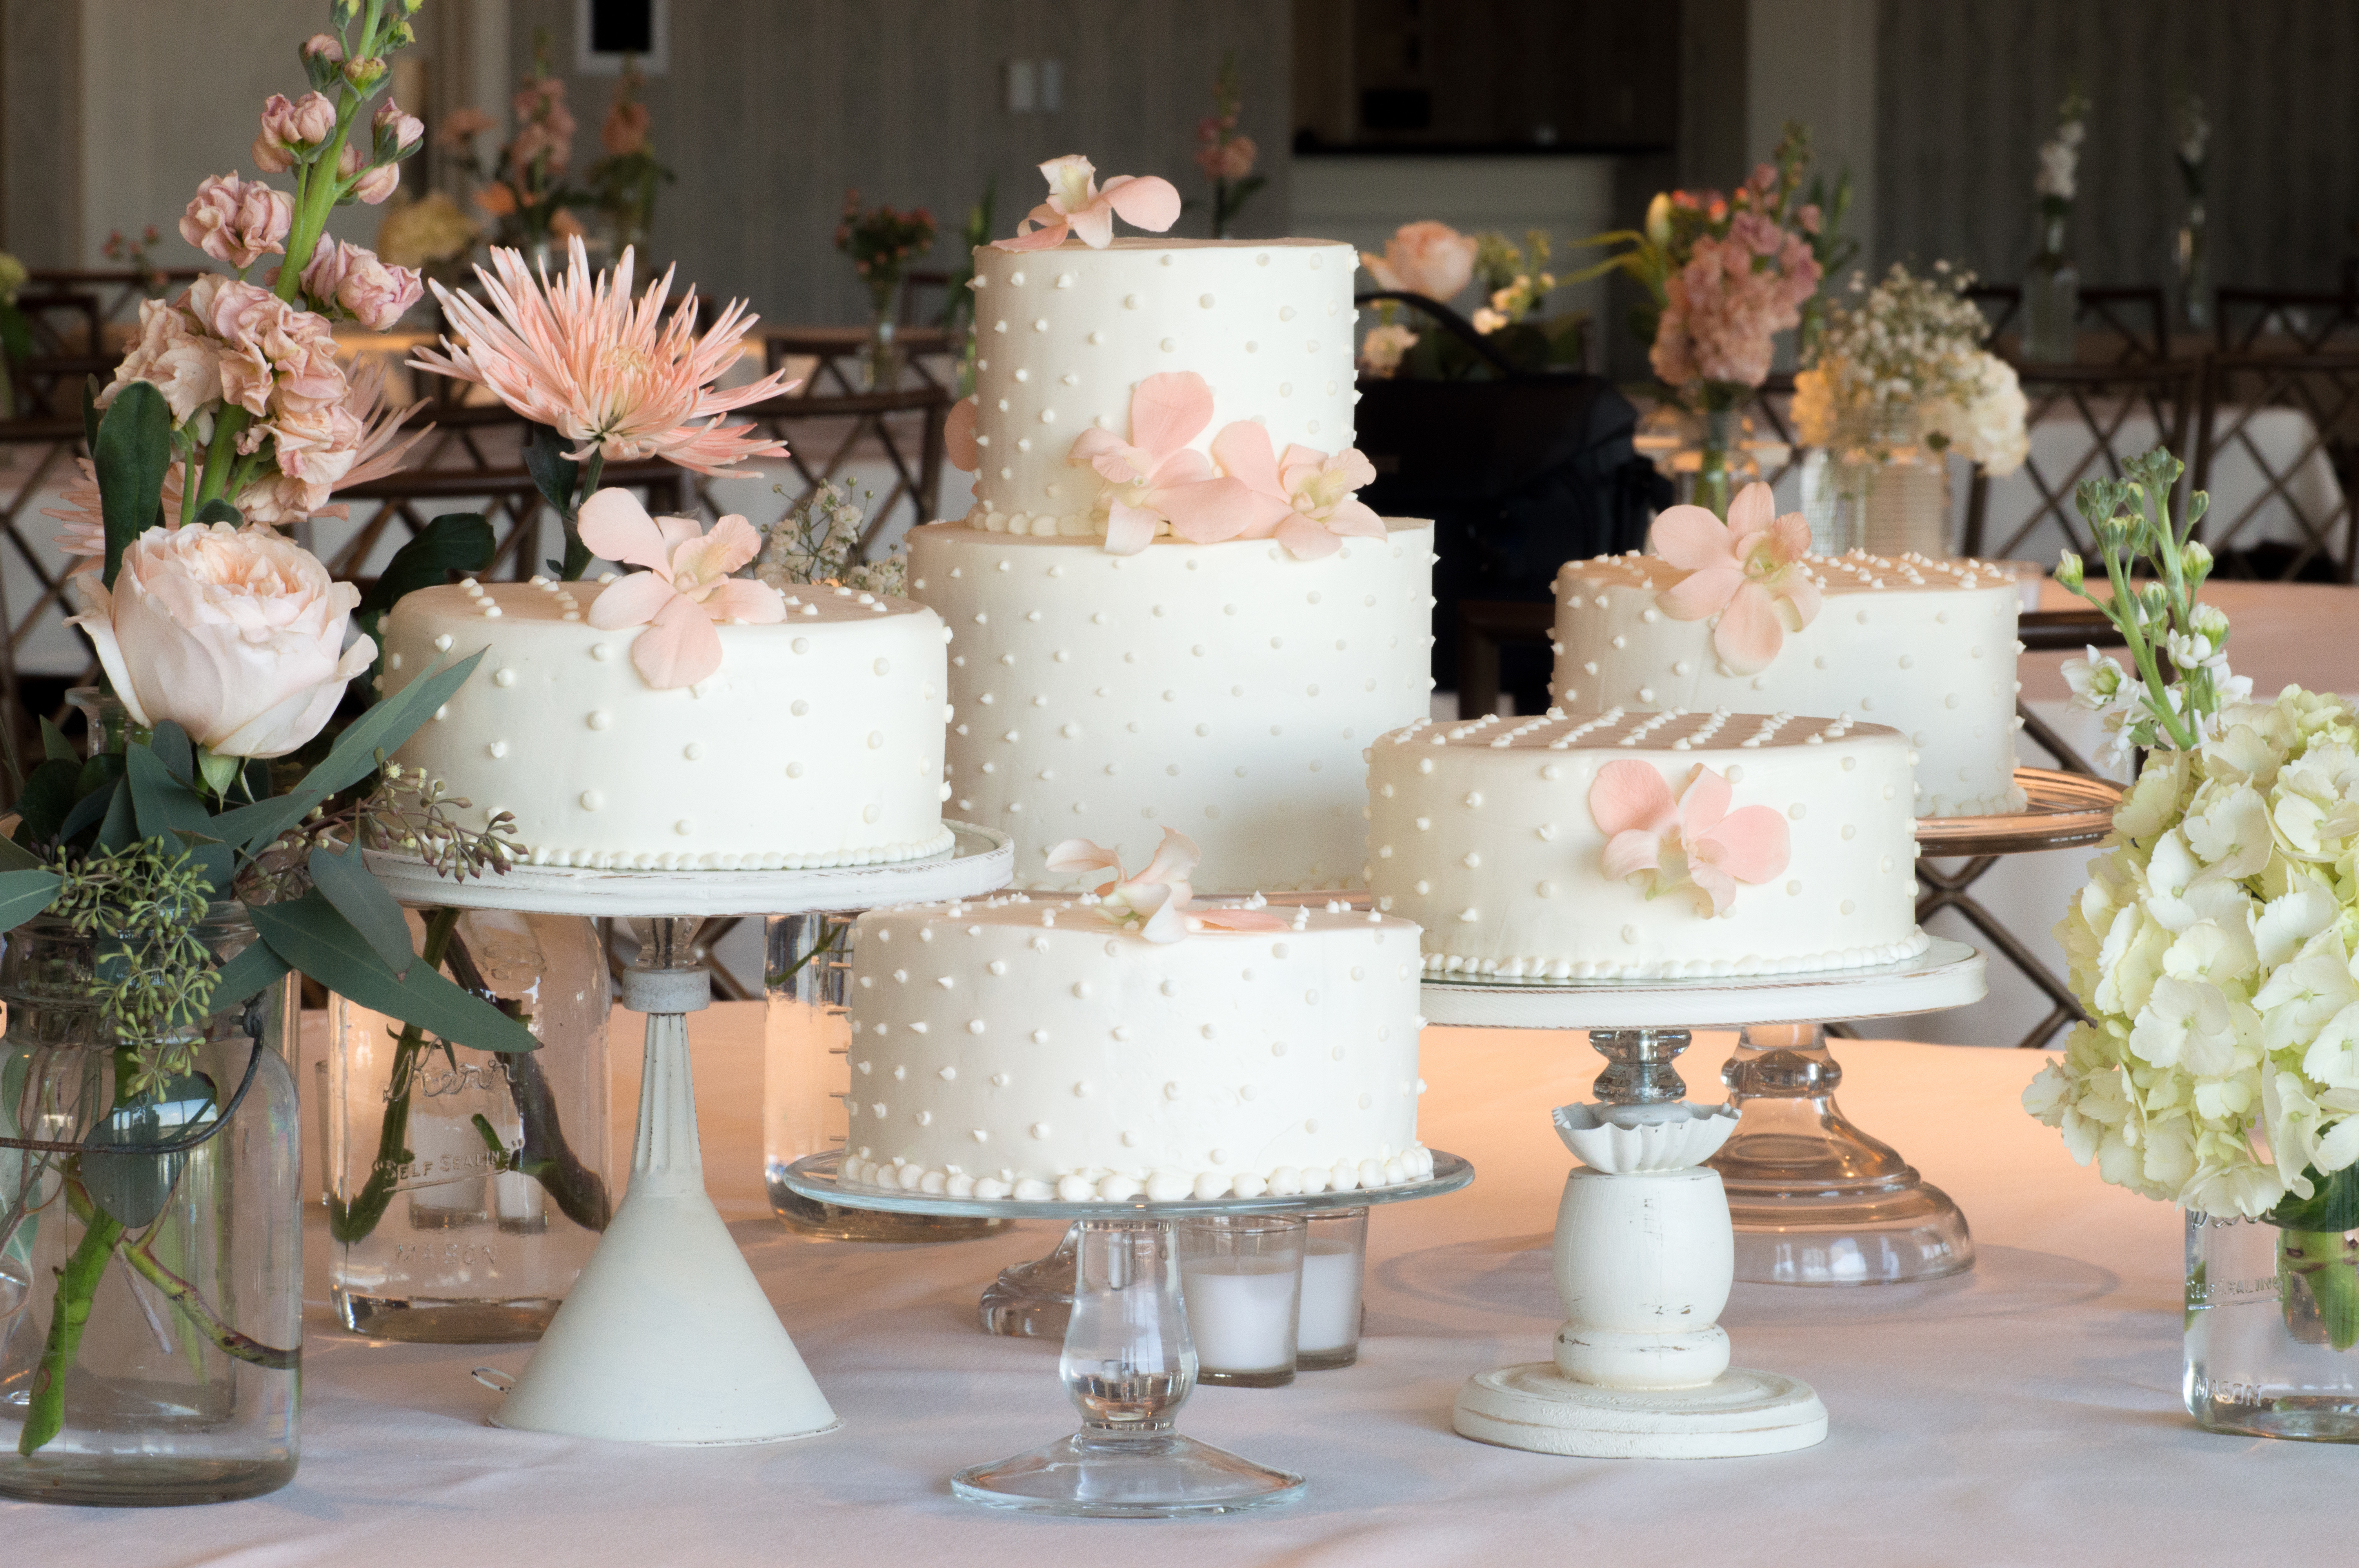 Separate elegant wedding cakes